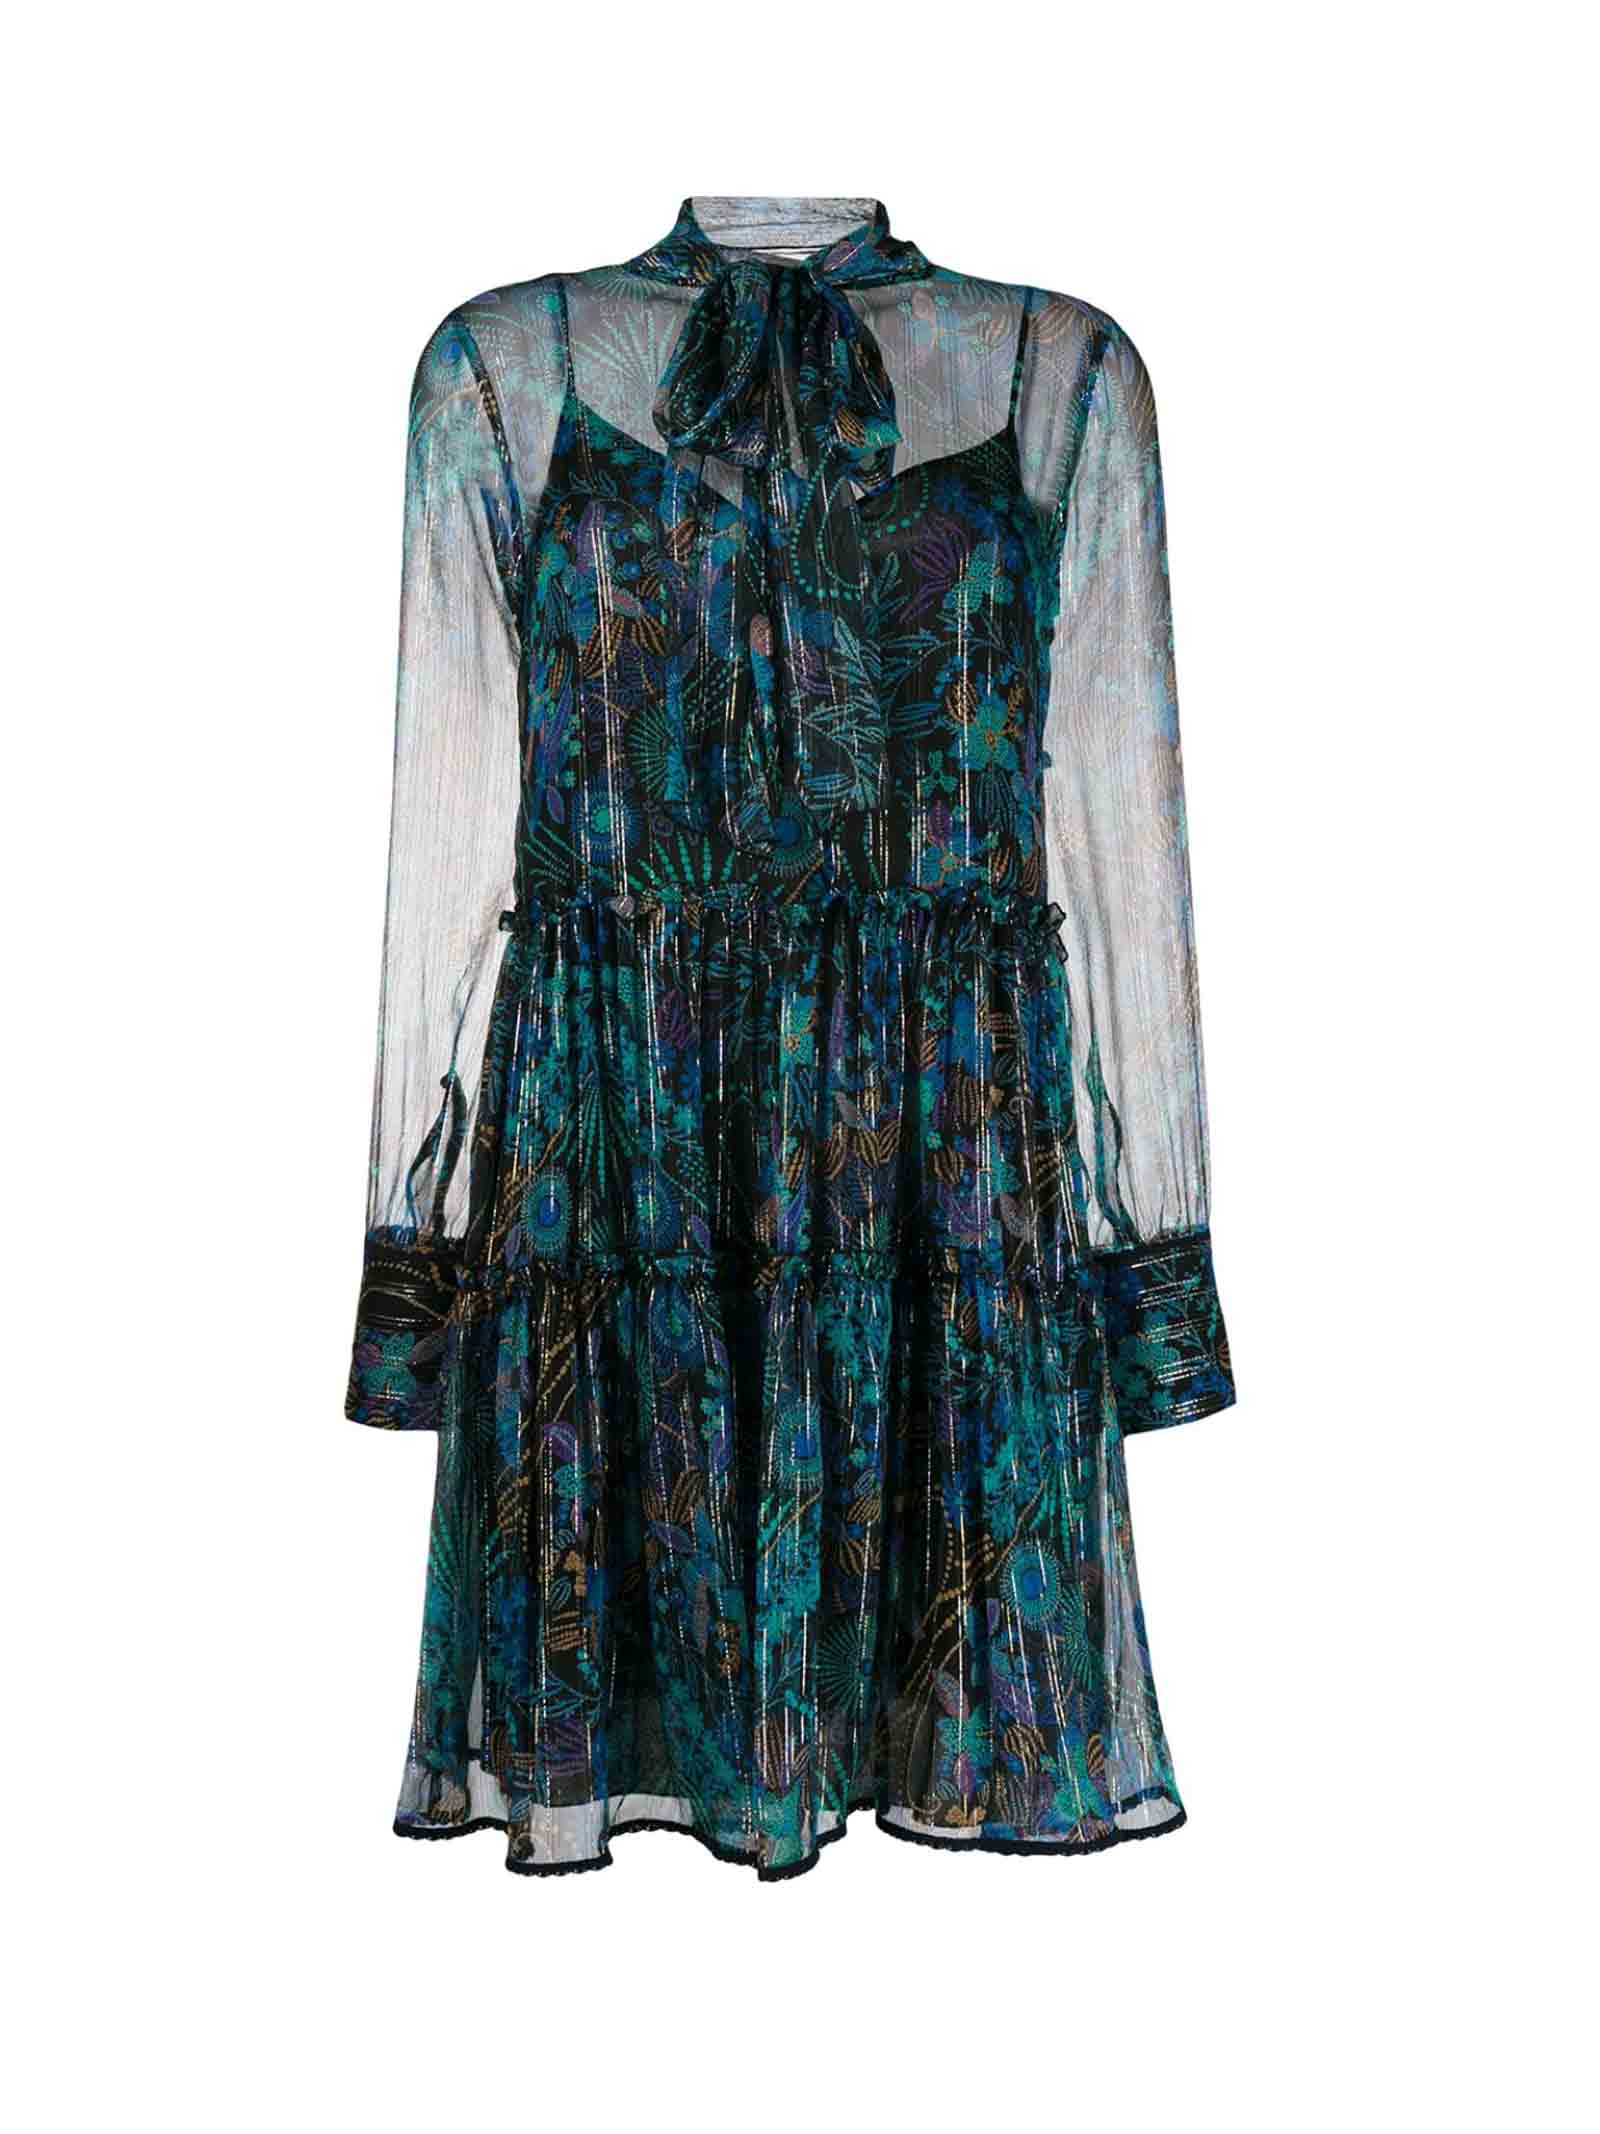 Buy See By Chloè Floral Print Dress online, shop See by Chloé with free shipping